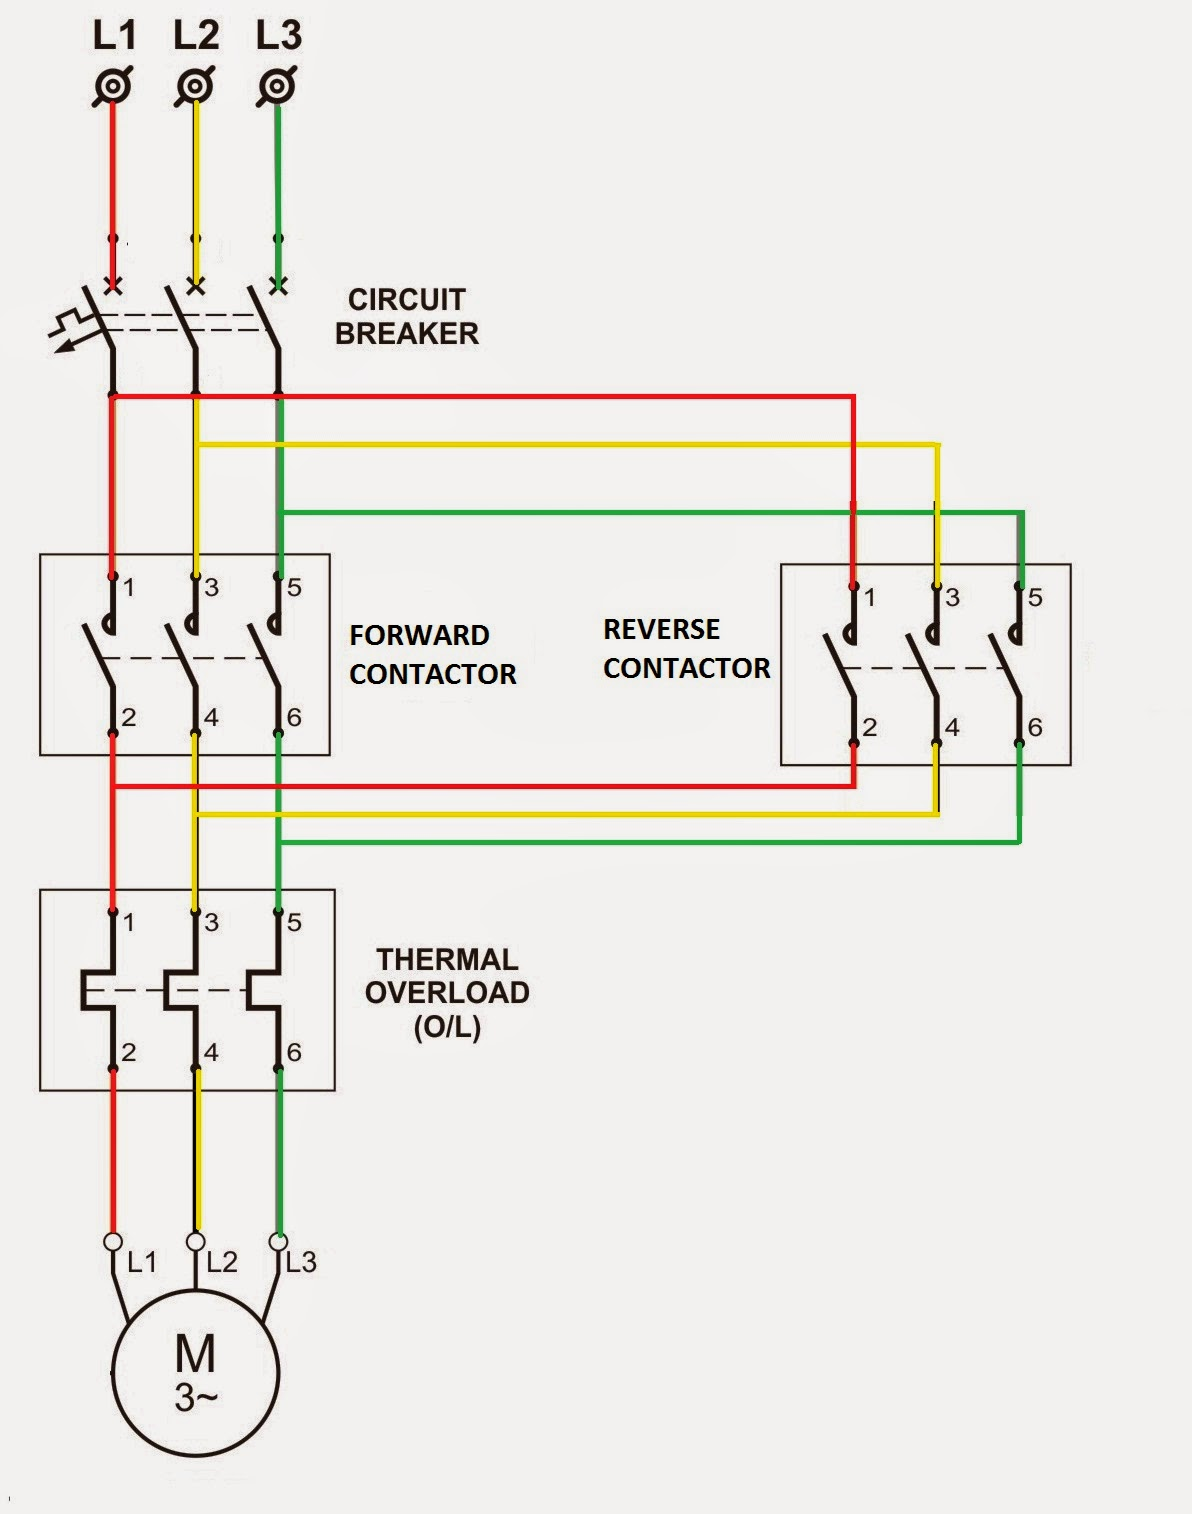 single phase contactor wiring diagram with Direct Online Applications Reverse on Dayton Reversing Drum Switch Wiring Diagram besides 7c4zp Just Installed Sauna Patio Process furthermore 120 Volt Reversing Motor Schematic Wiring Diagrams as well Power Control Circuit For Forward And moreover Basic Relay Wiring Diagram.